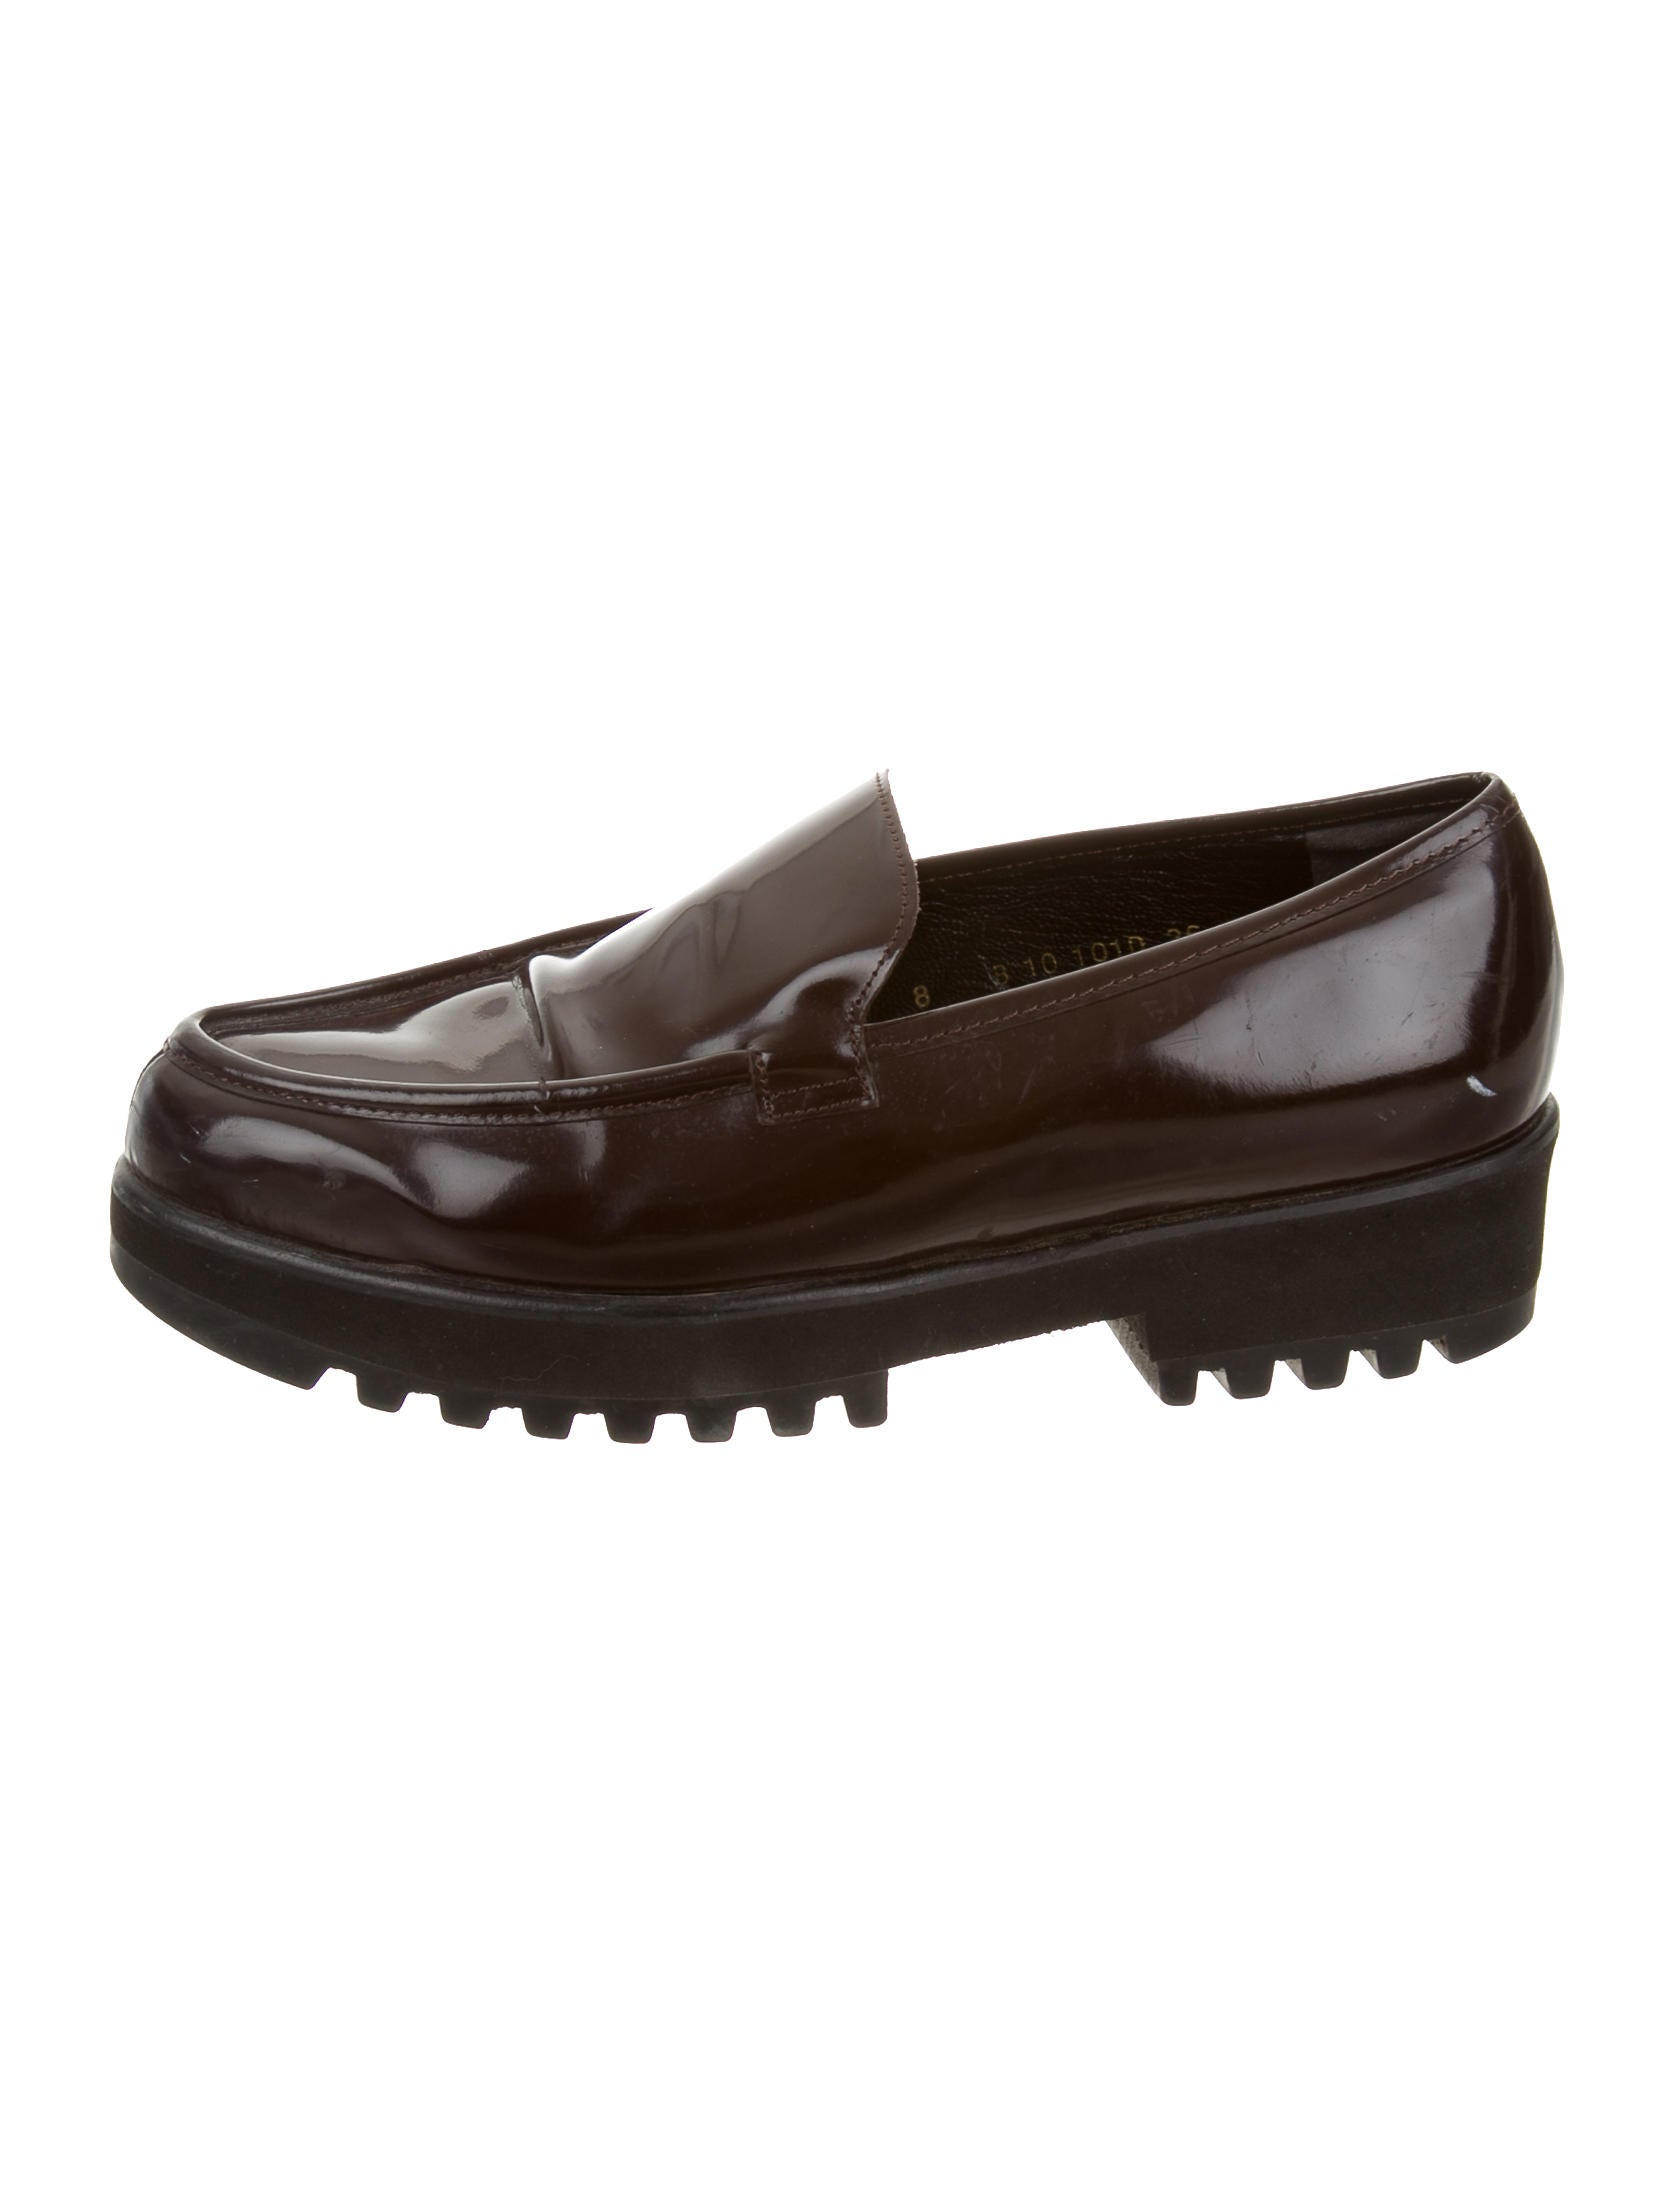 Robert Clergerie Leather Platform Loafers Shoes